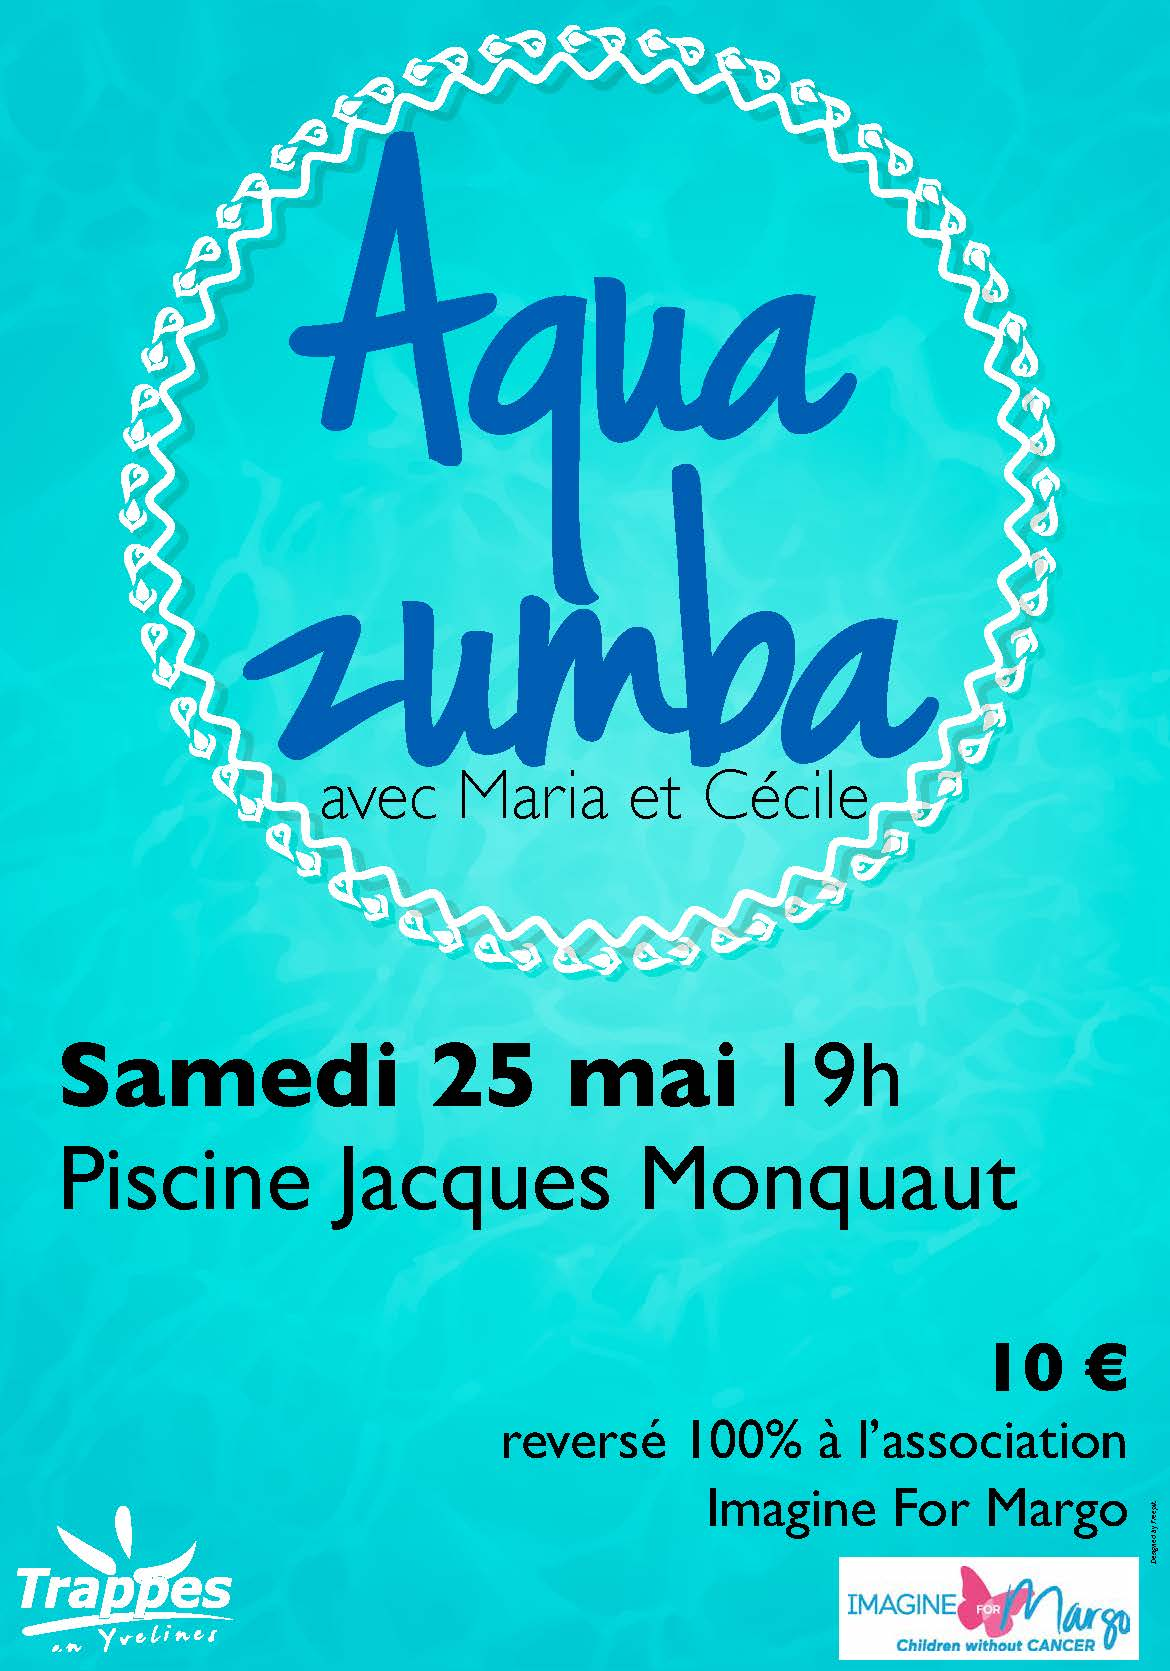 aquazumba 25 mai 2019 à Trappes au profit d'Imagine for Margo